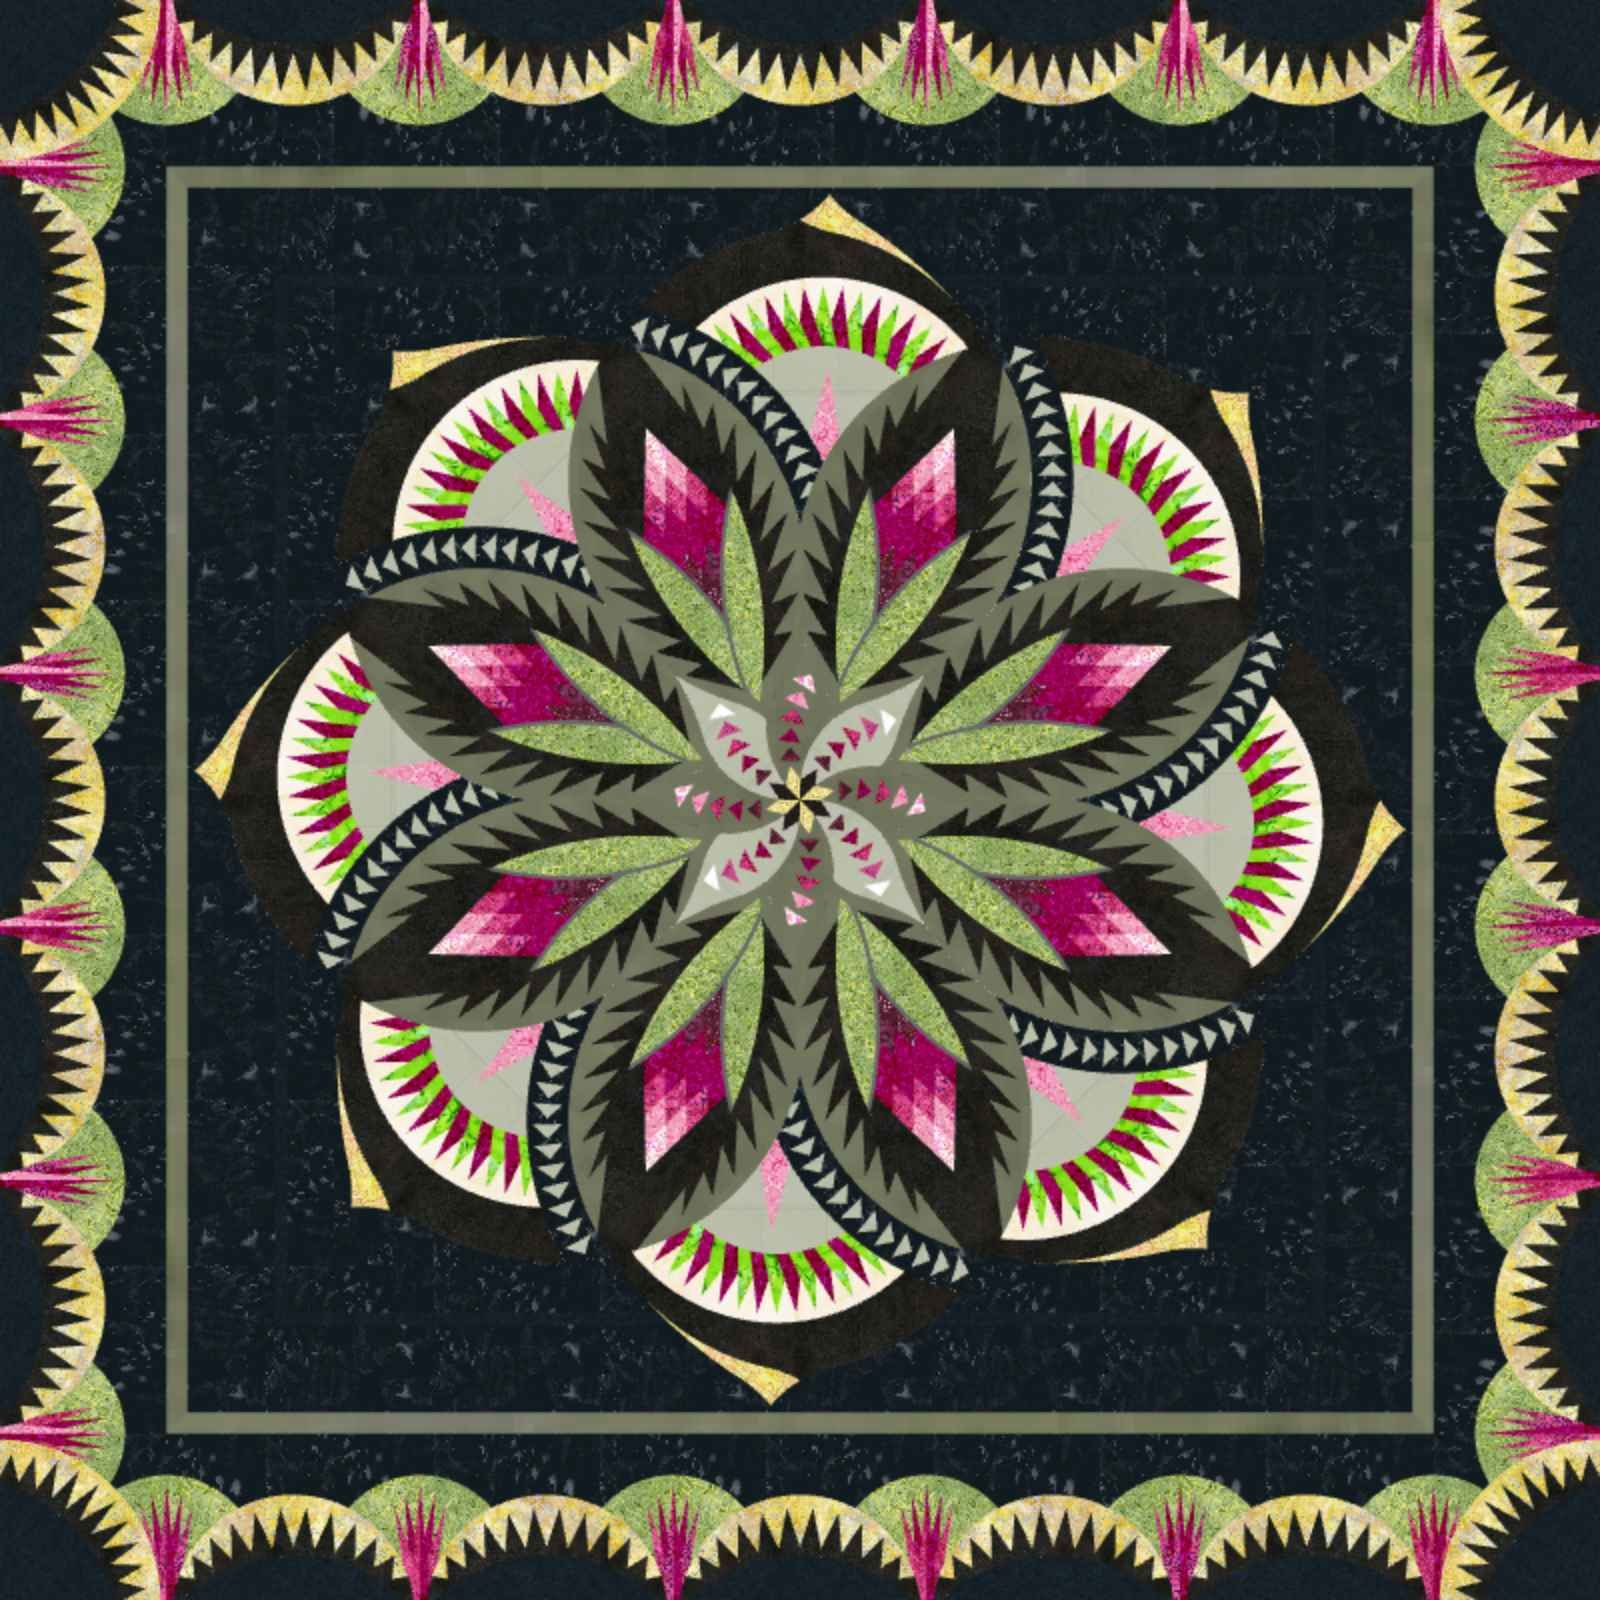 Check out this original color-way designed by diane.gilleran y. Sign up on www.quiltster.com to create your own.